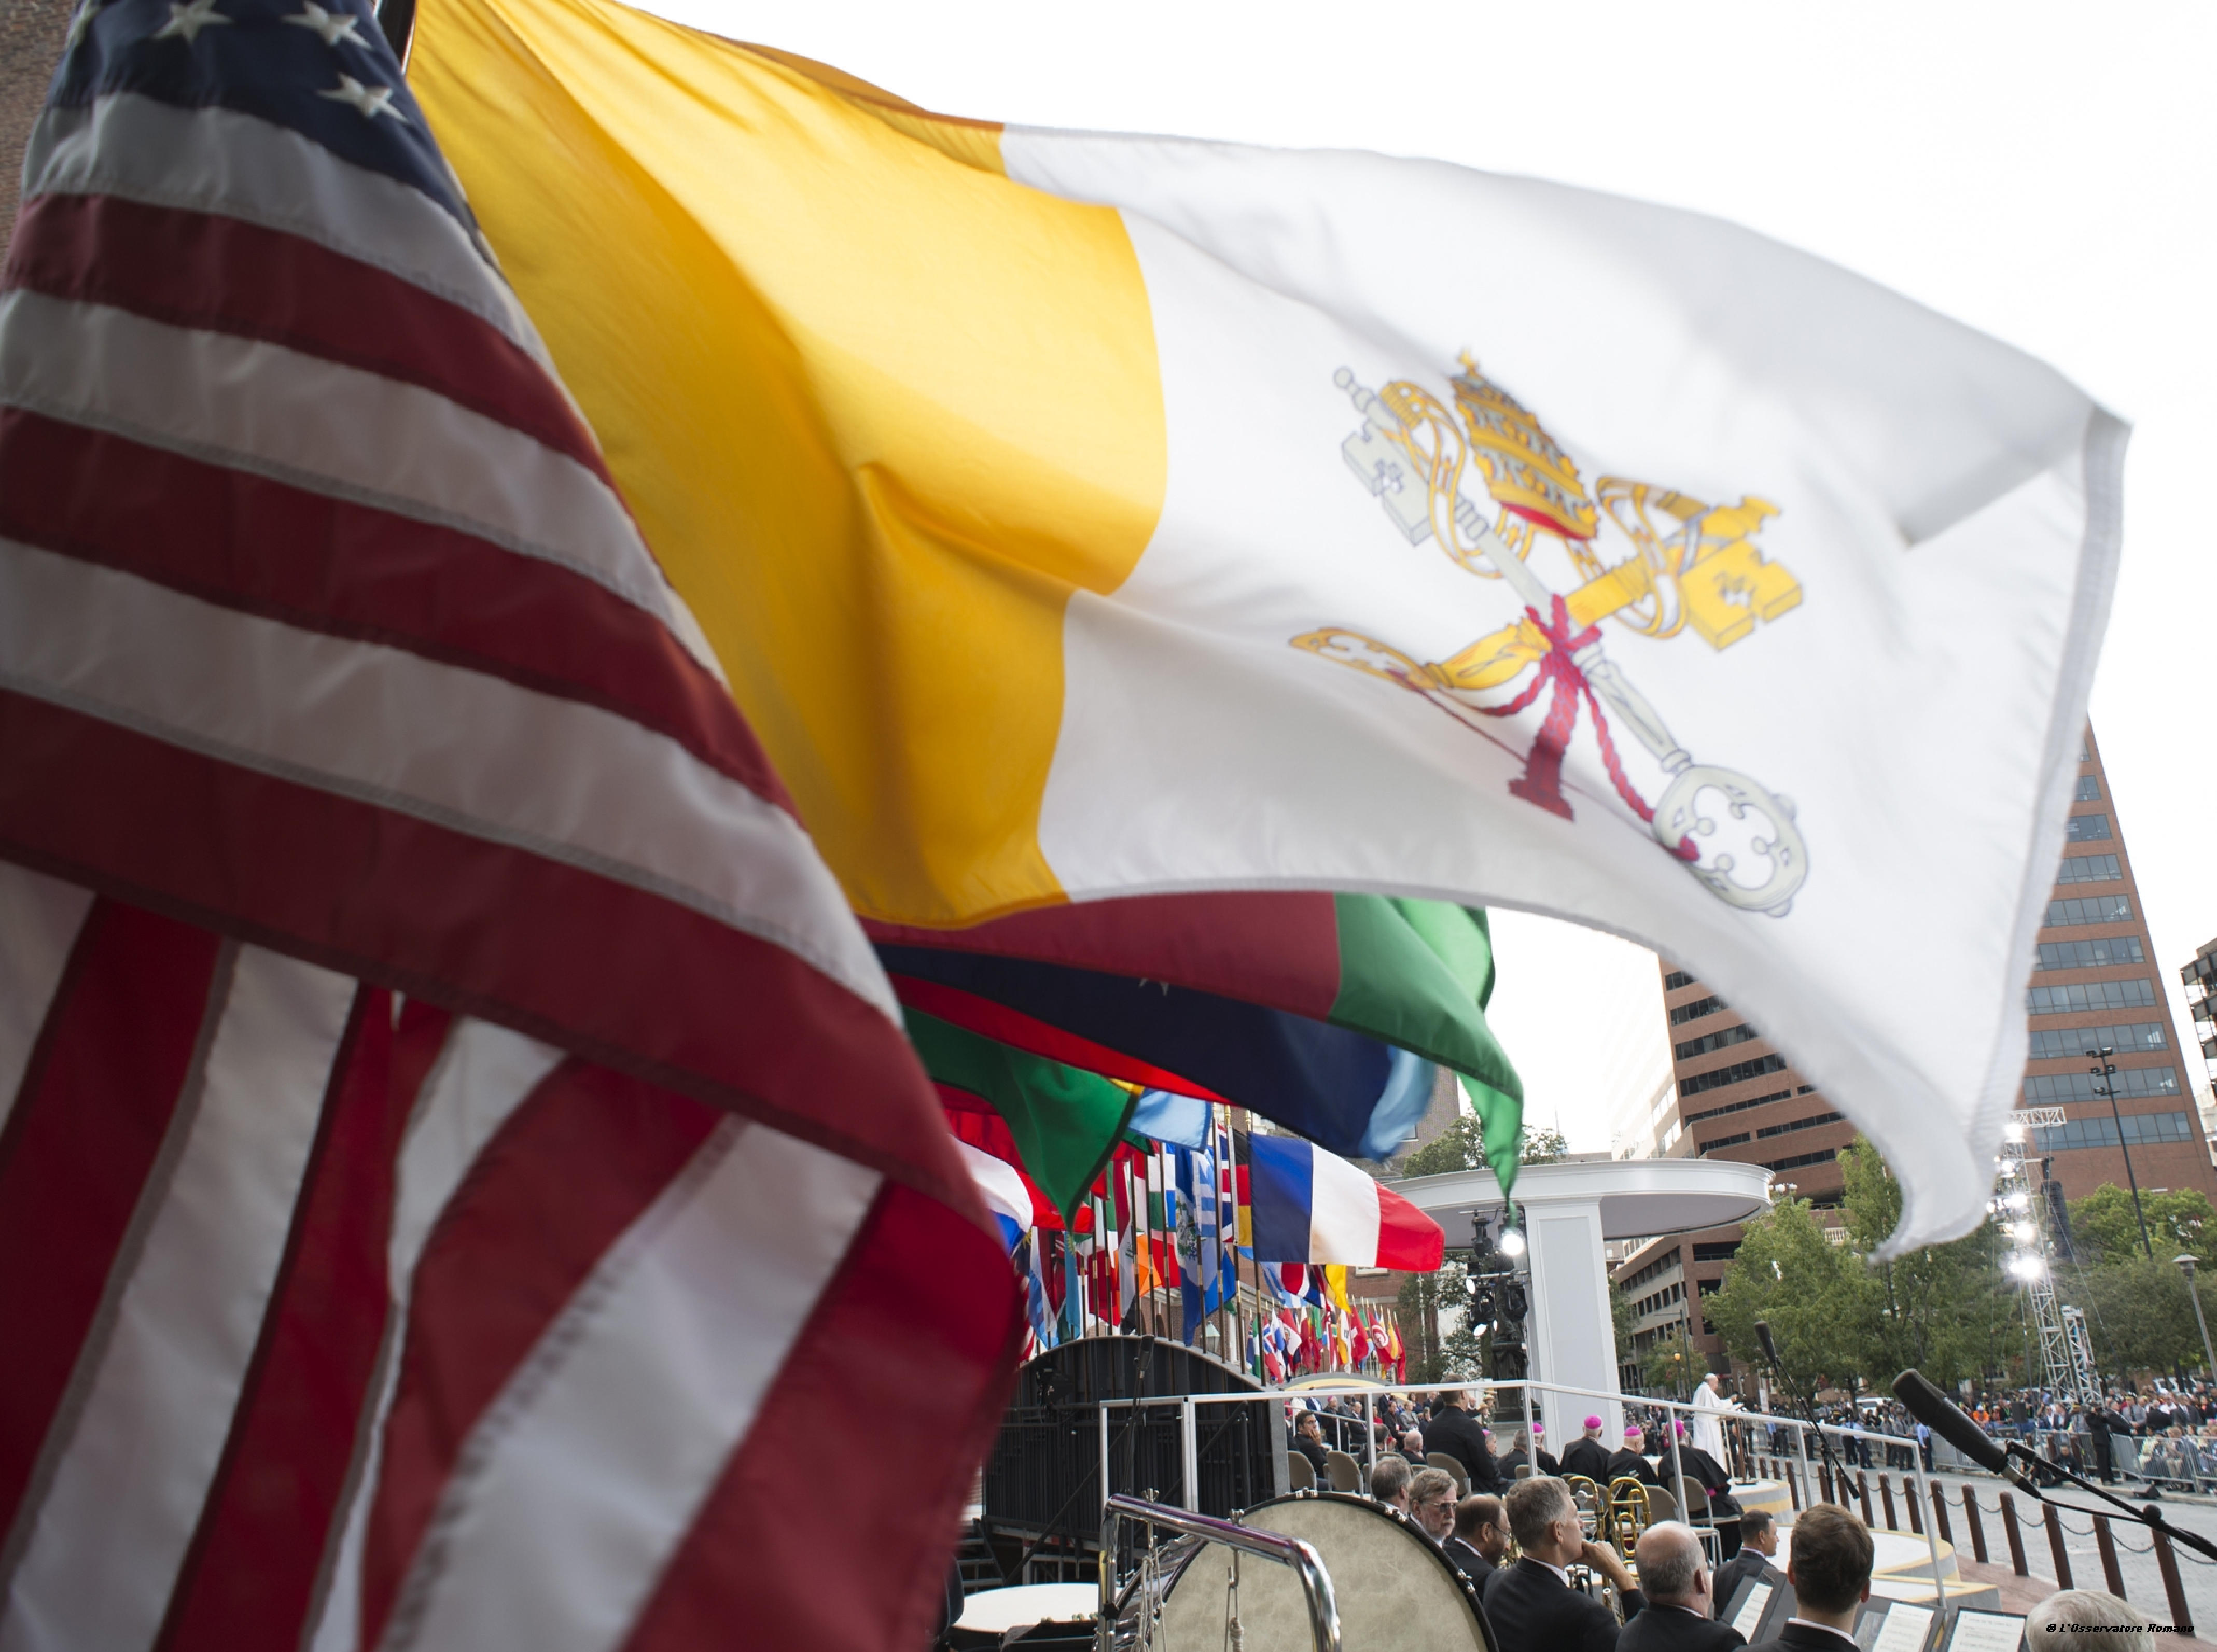 Flags of USA and Vatican State